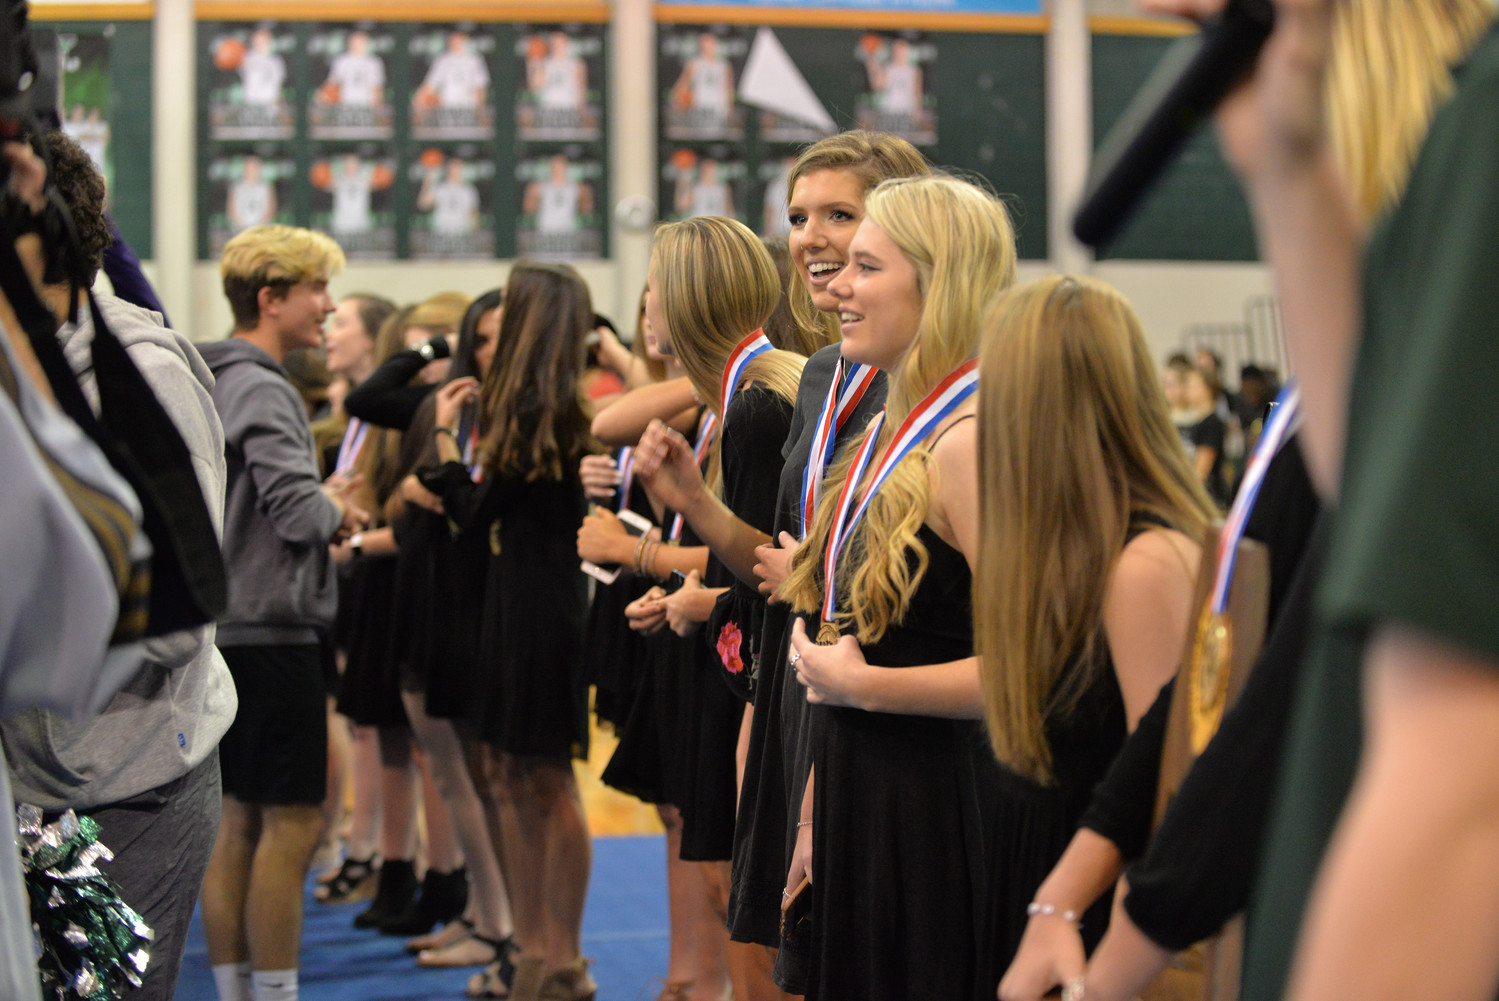 CPHS athletes presented the cheerleaders with their UIL medals at their pep rally celebrating their state title.